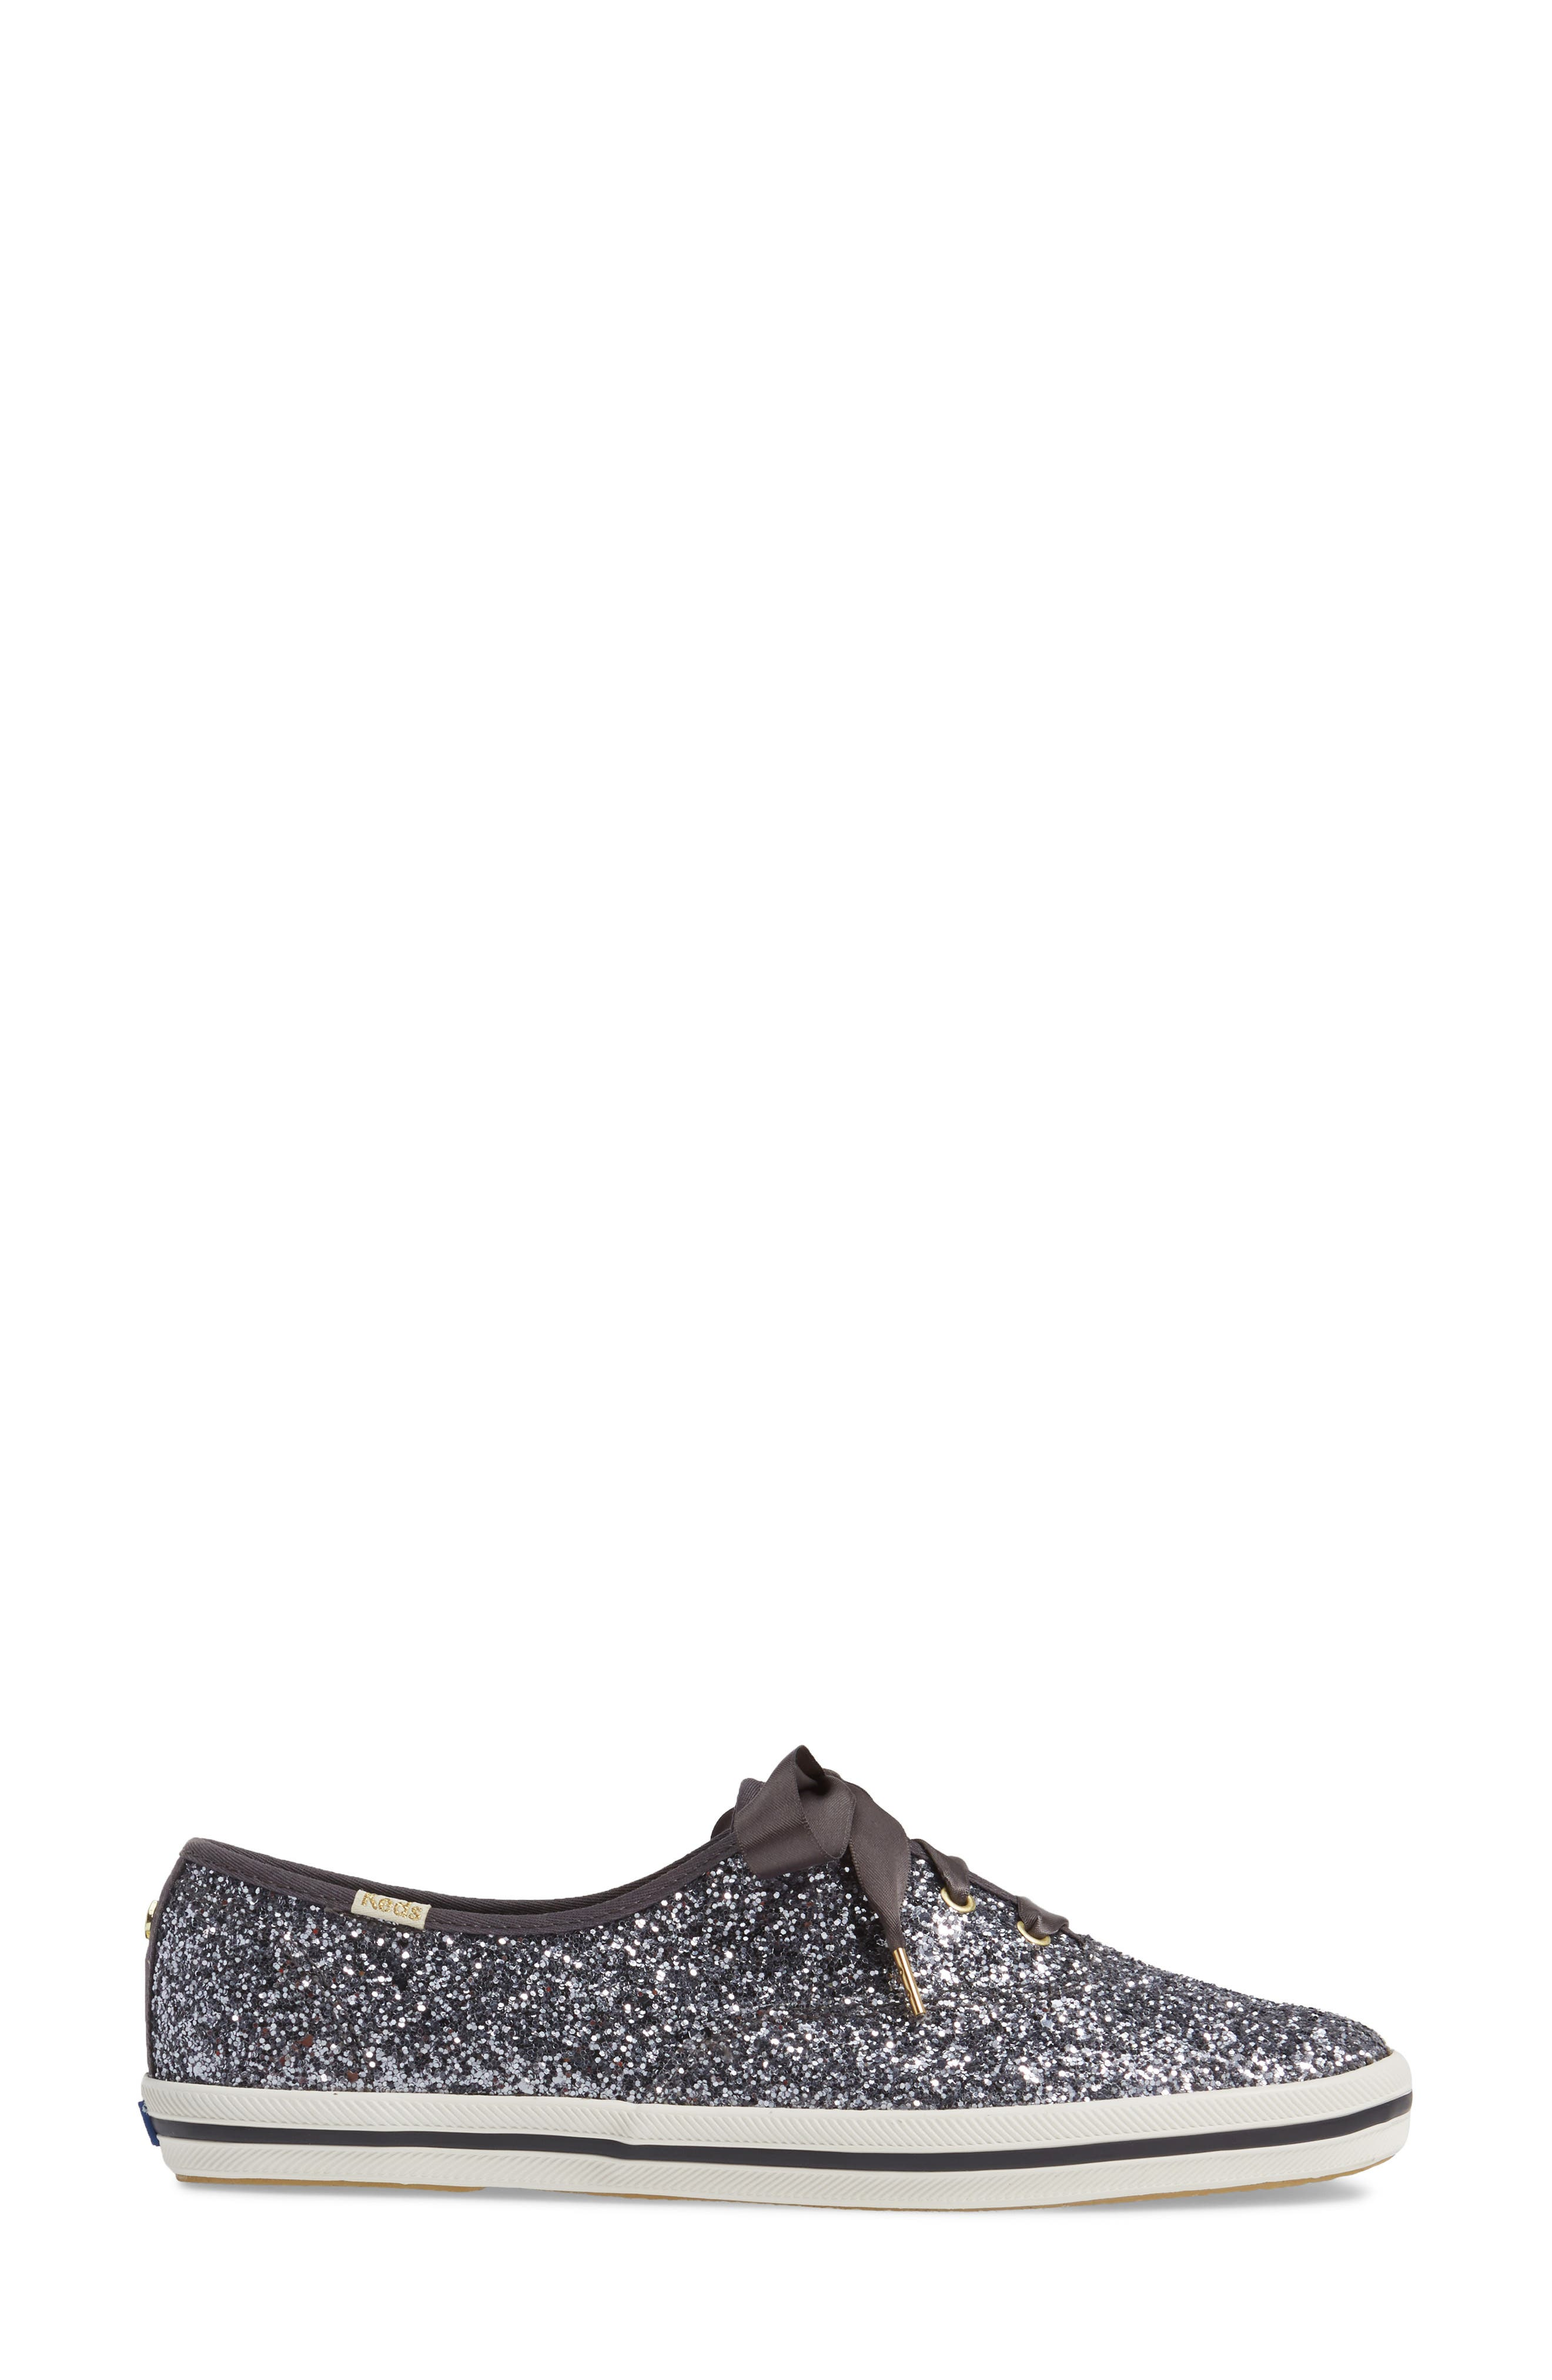 KEDS<SUP>®</SUP> FOR KATE SPADE NEW YORK, glitter sneaker, Alternate thumbnail 3, color, PEWTER